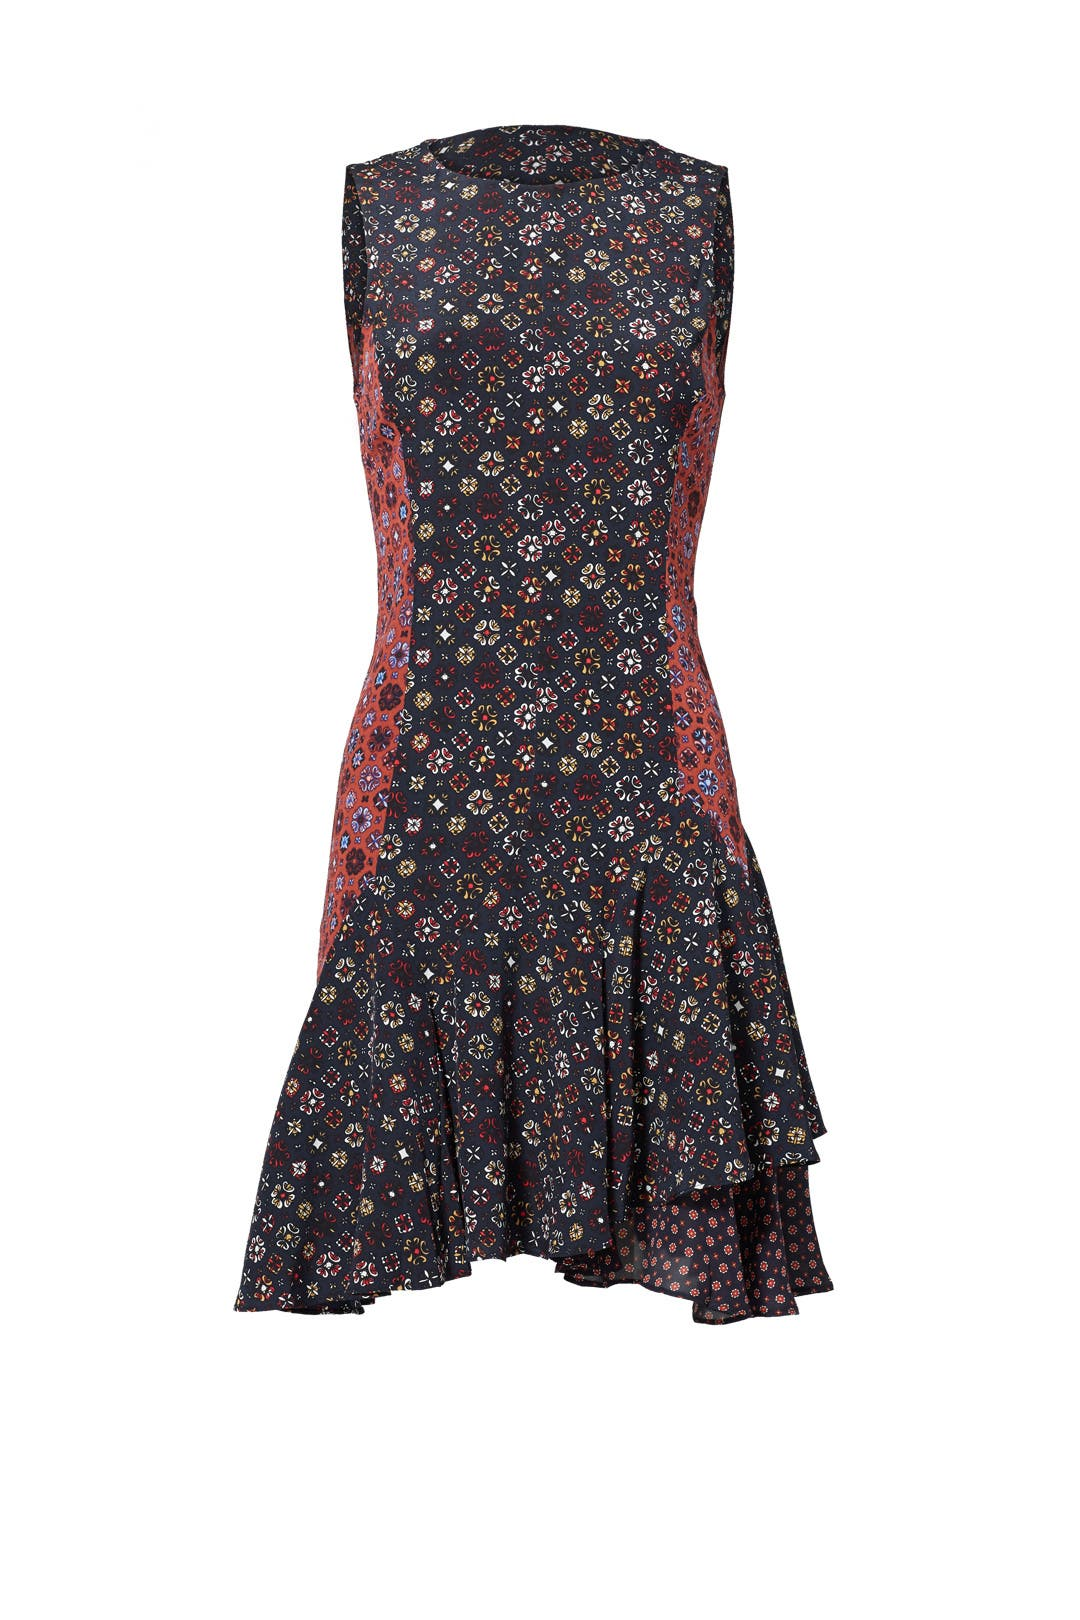 Derek Lam 10 Crosby Printed Silk Dress Cheap Real Eastbay Outlet Online Clearance Big Discount Discount Manchester Cheap Price Wholesale Djj9umx